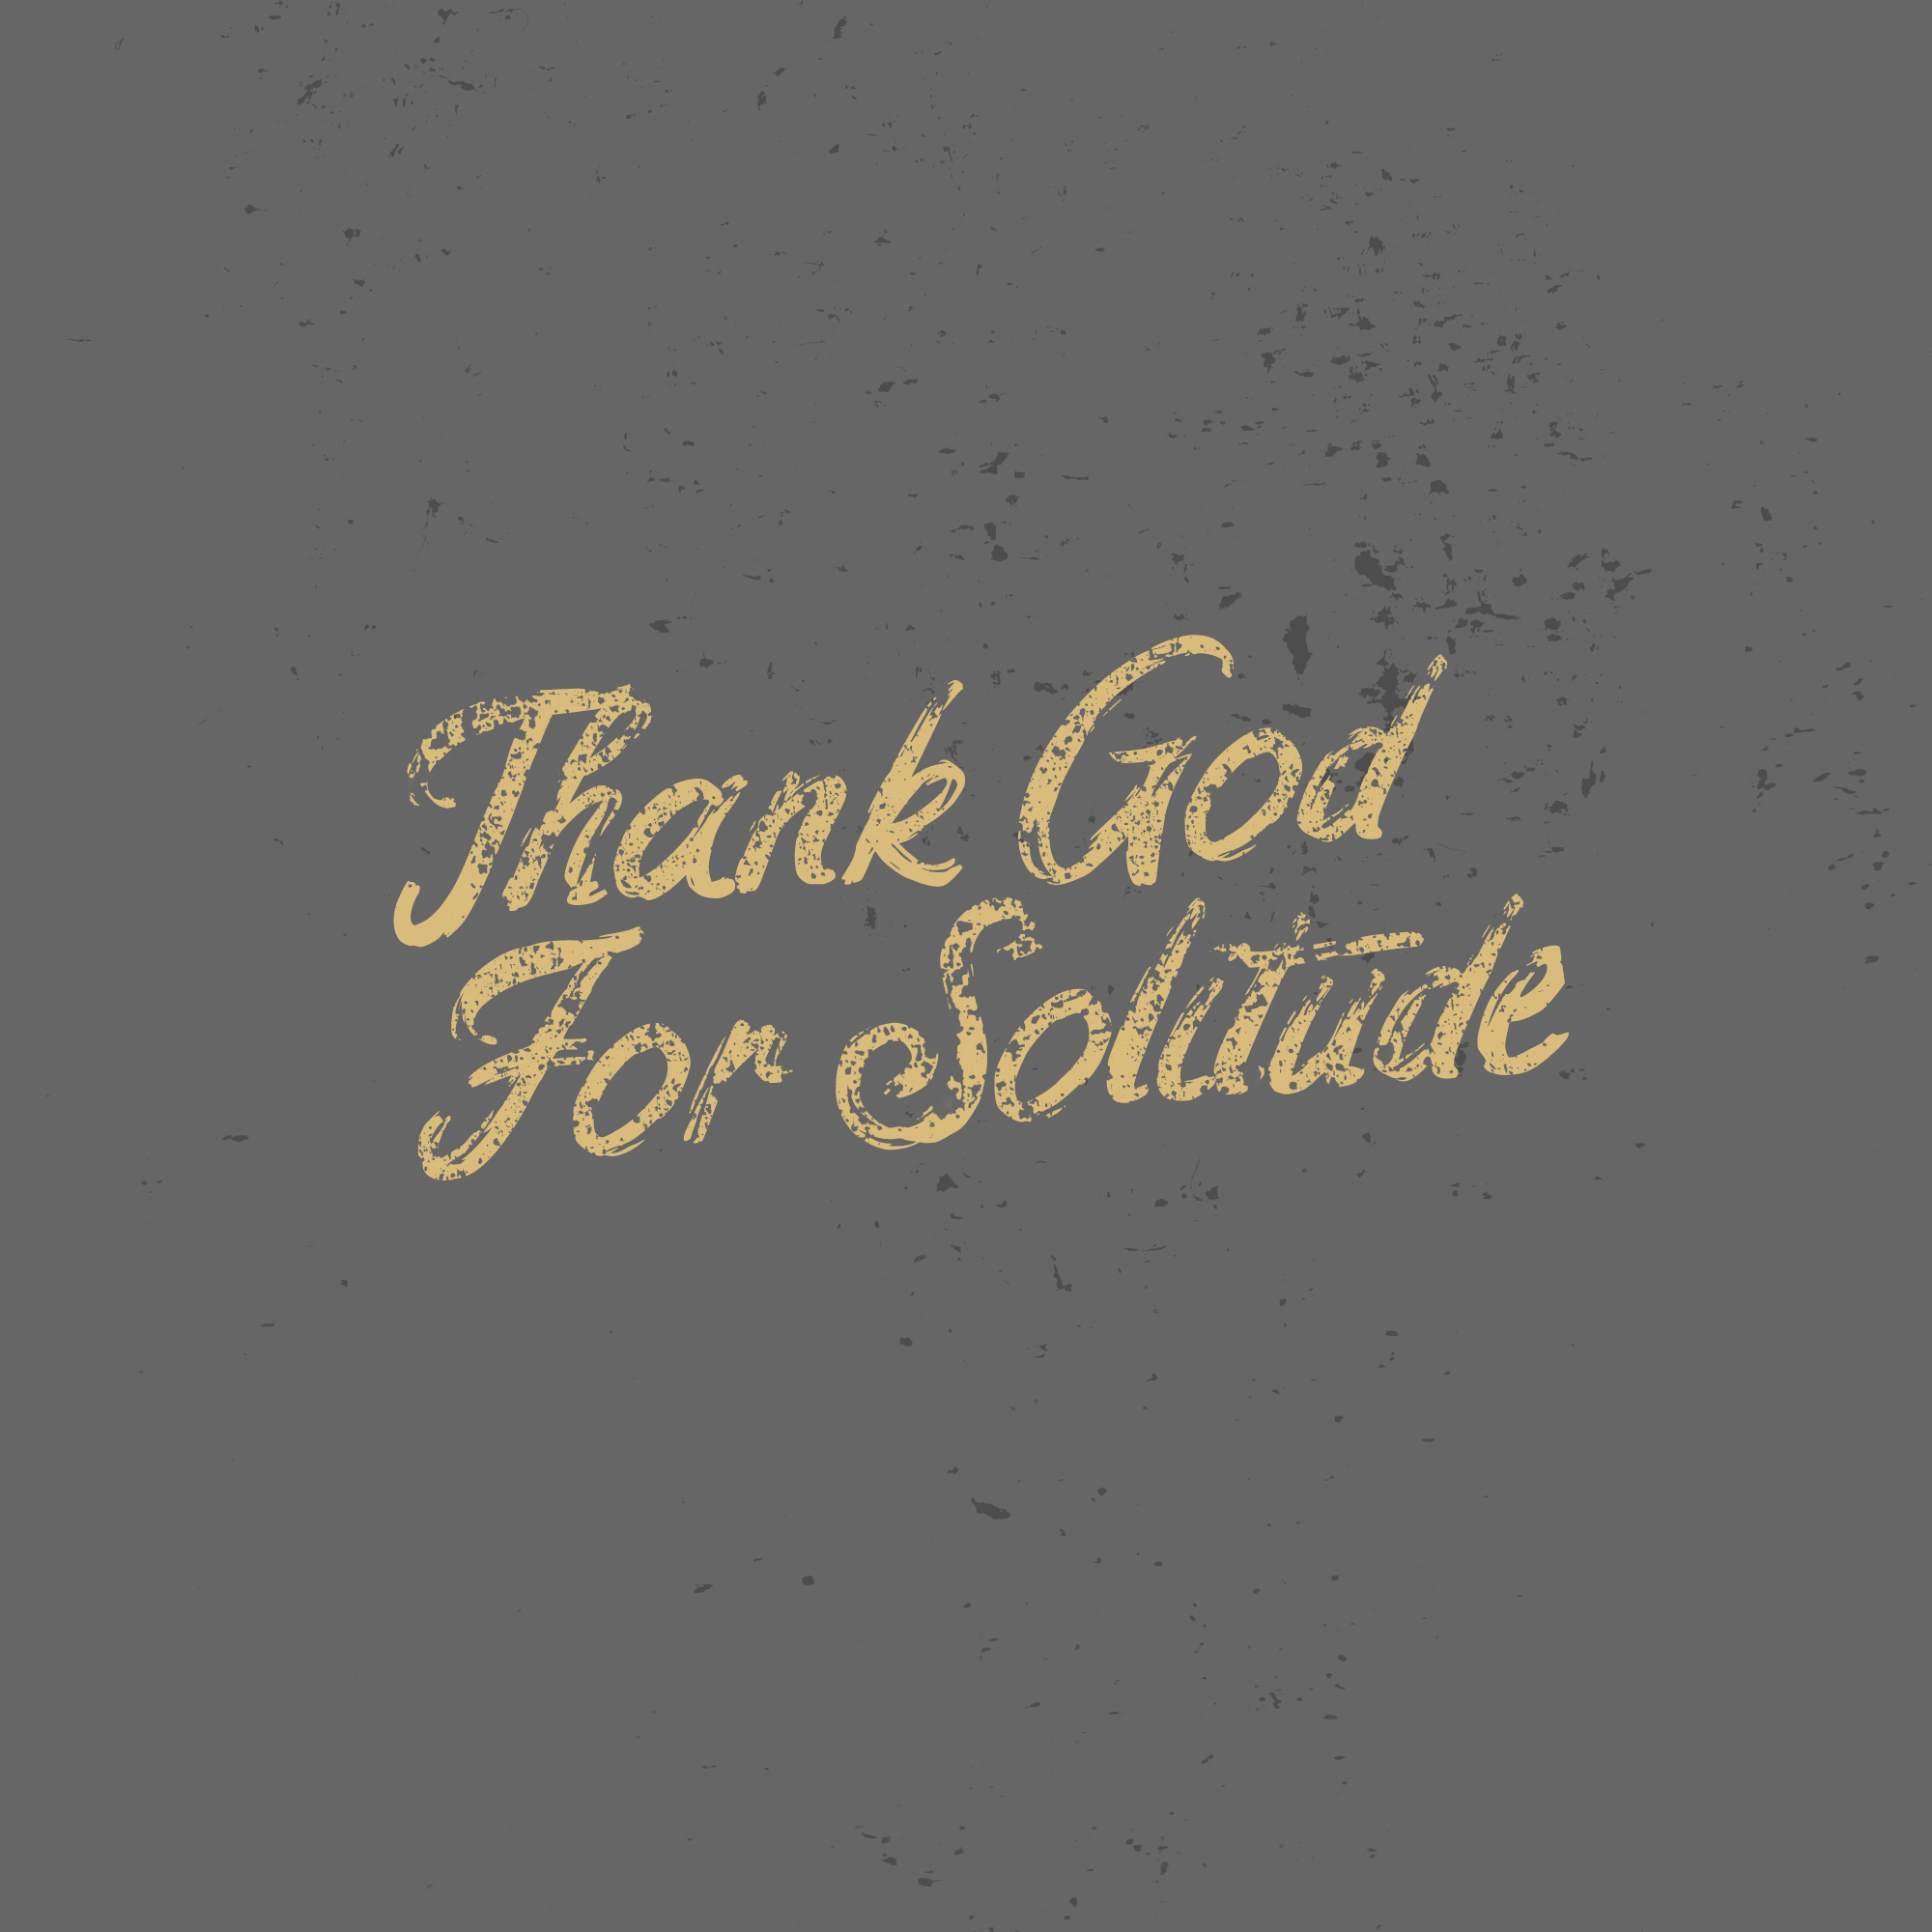 Thank God for solutude